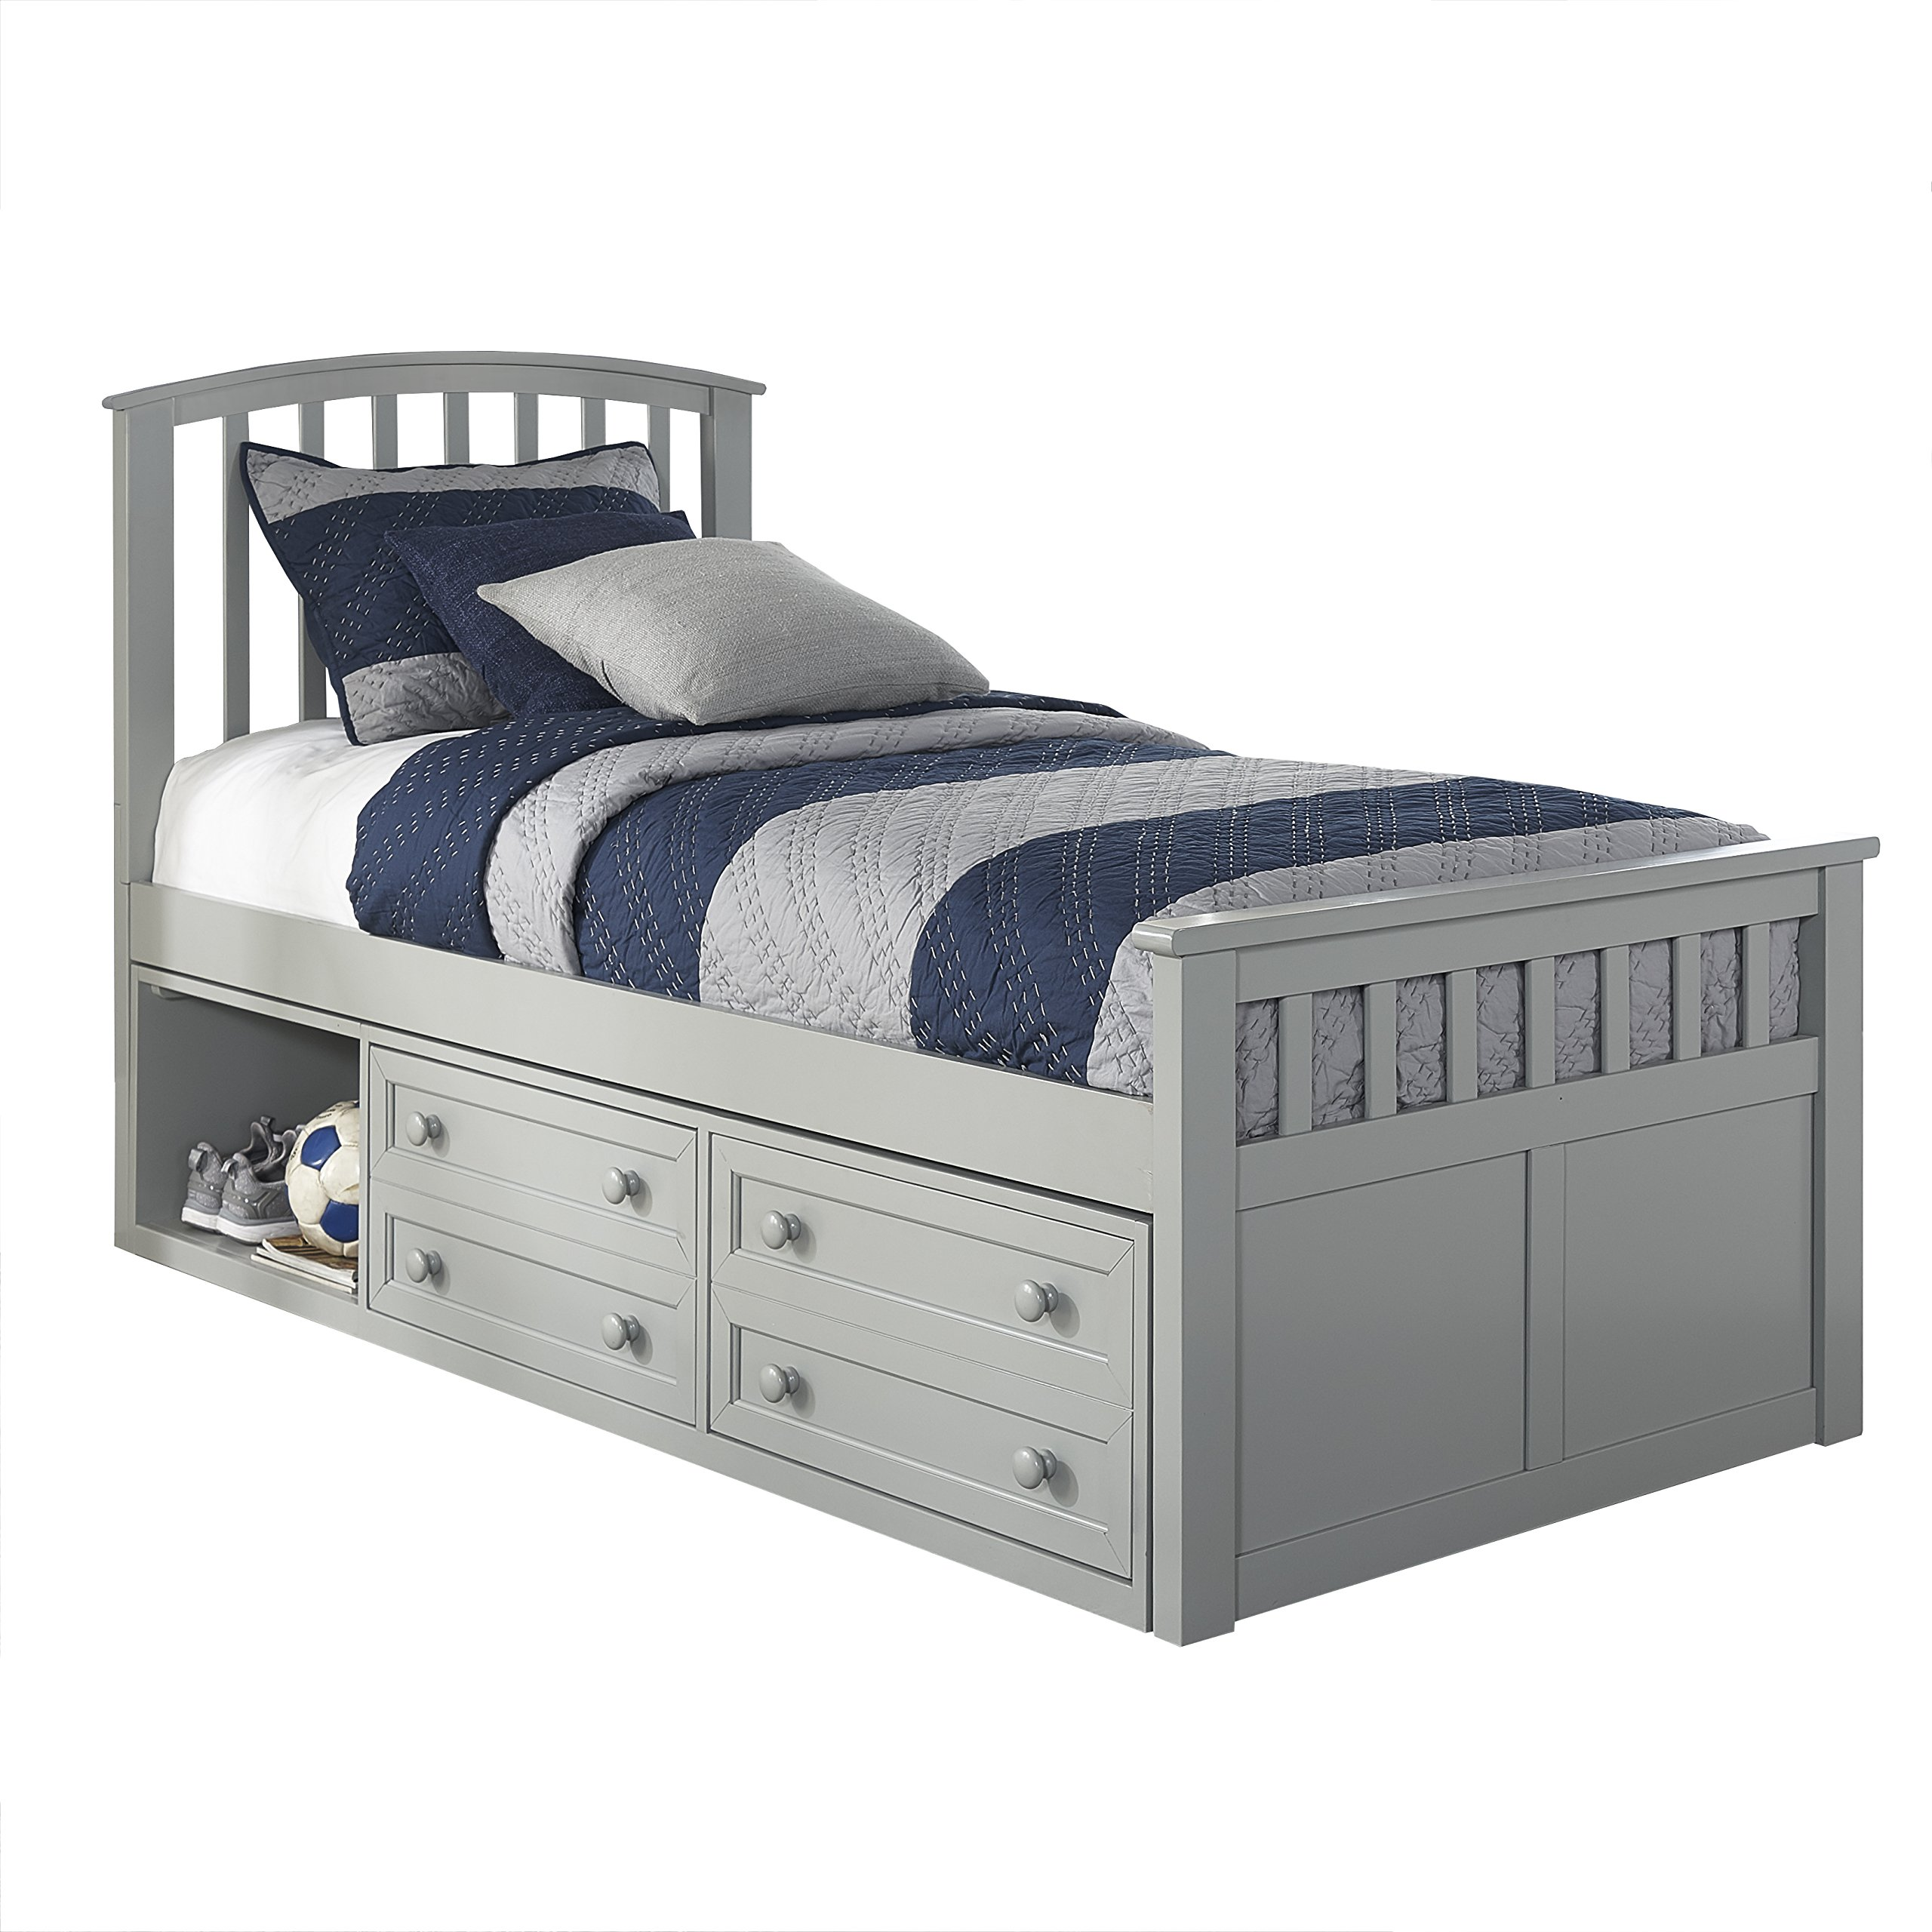 Hillsdale Furniture Hillsdale Charlie Captains Bed with One Storage Unit, Twin Gray by Hillsdale Furniture